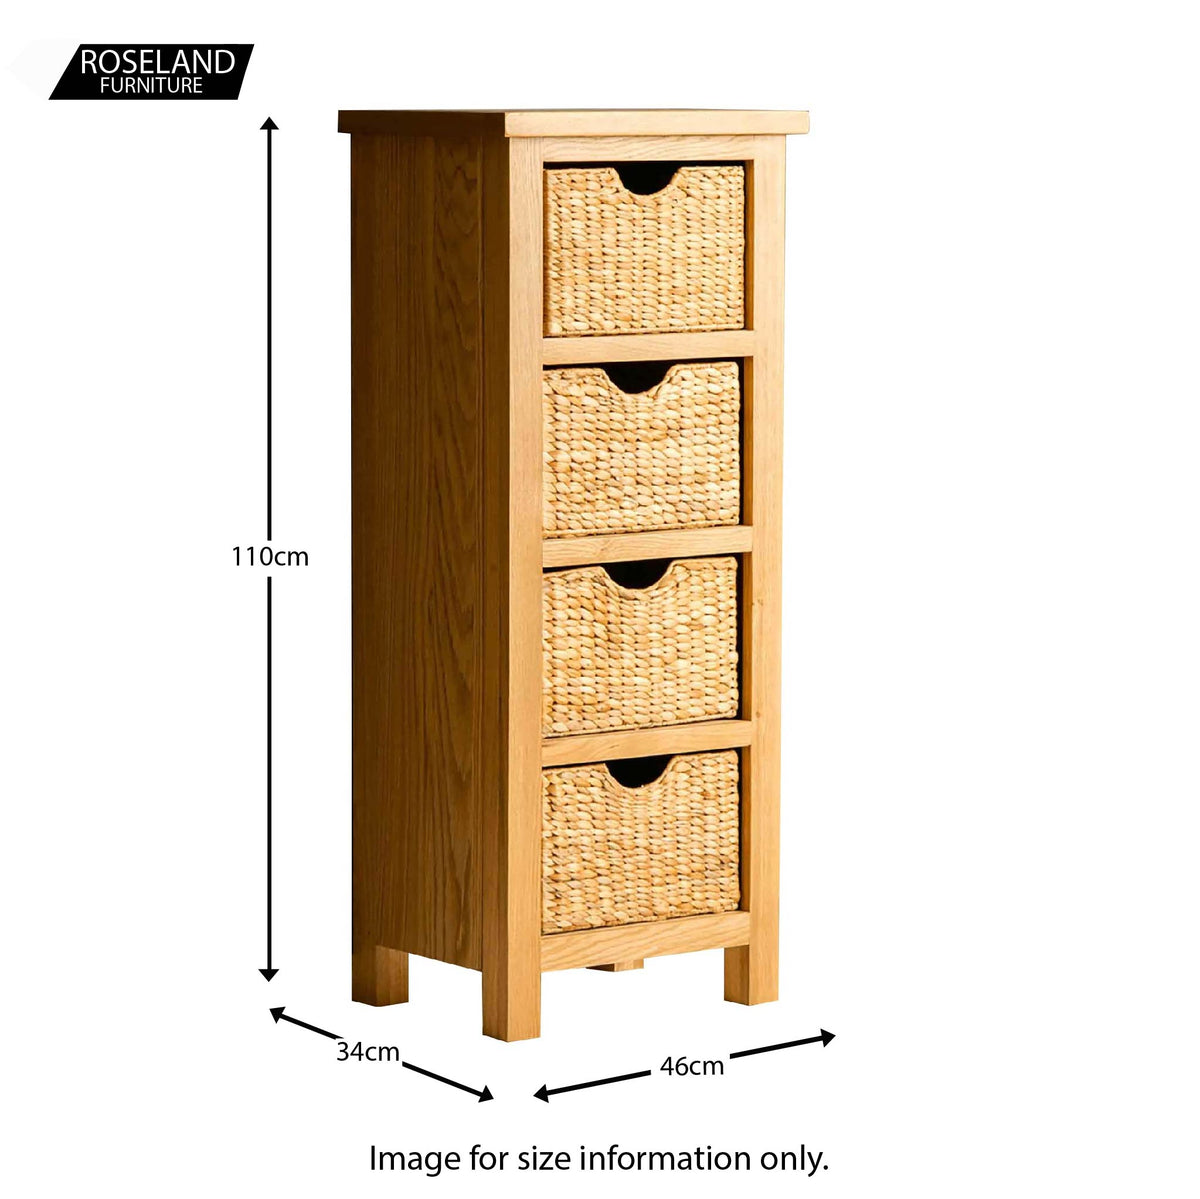 London Oak Tallboy with Baskets - Size guide